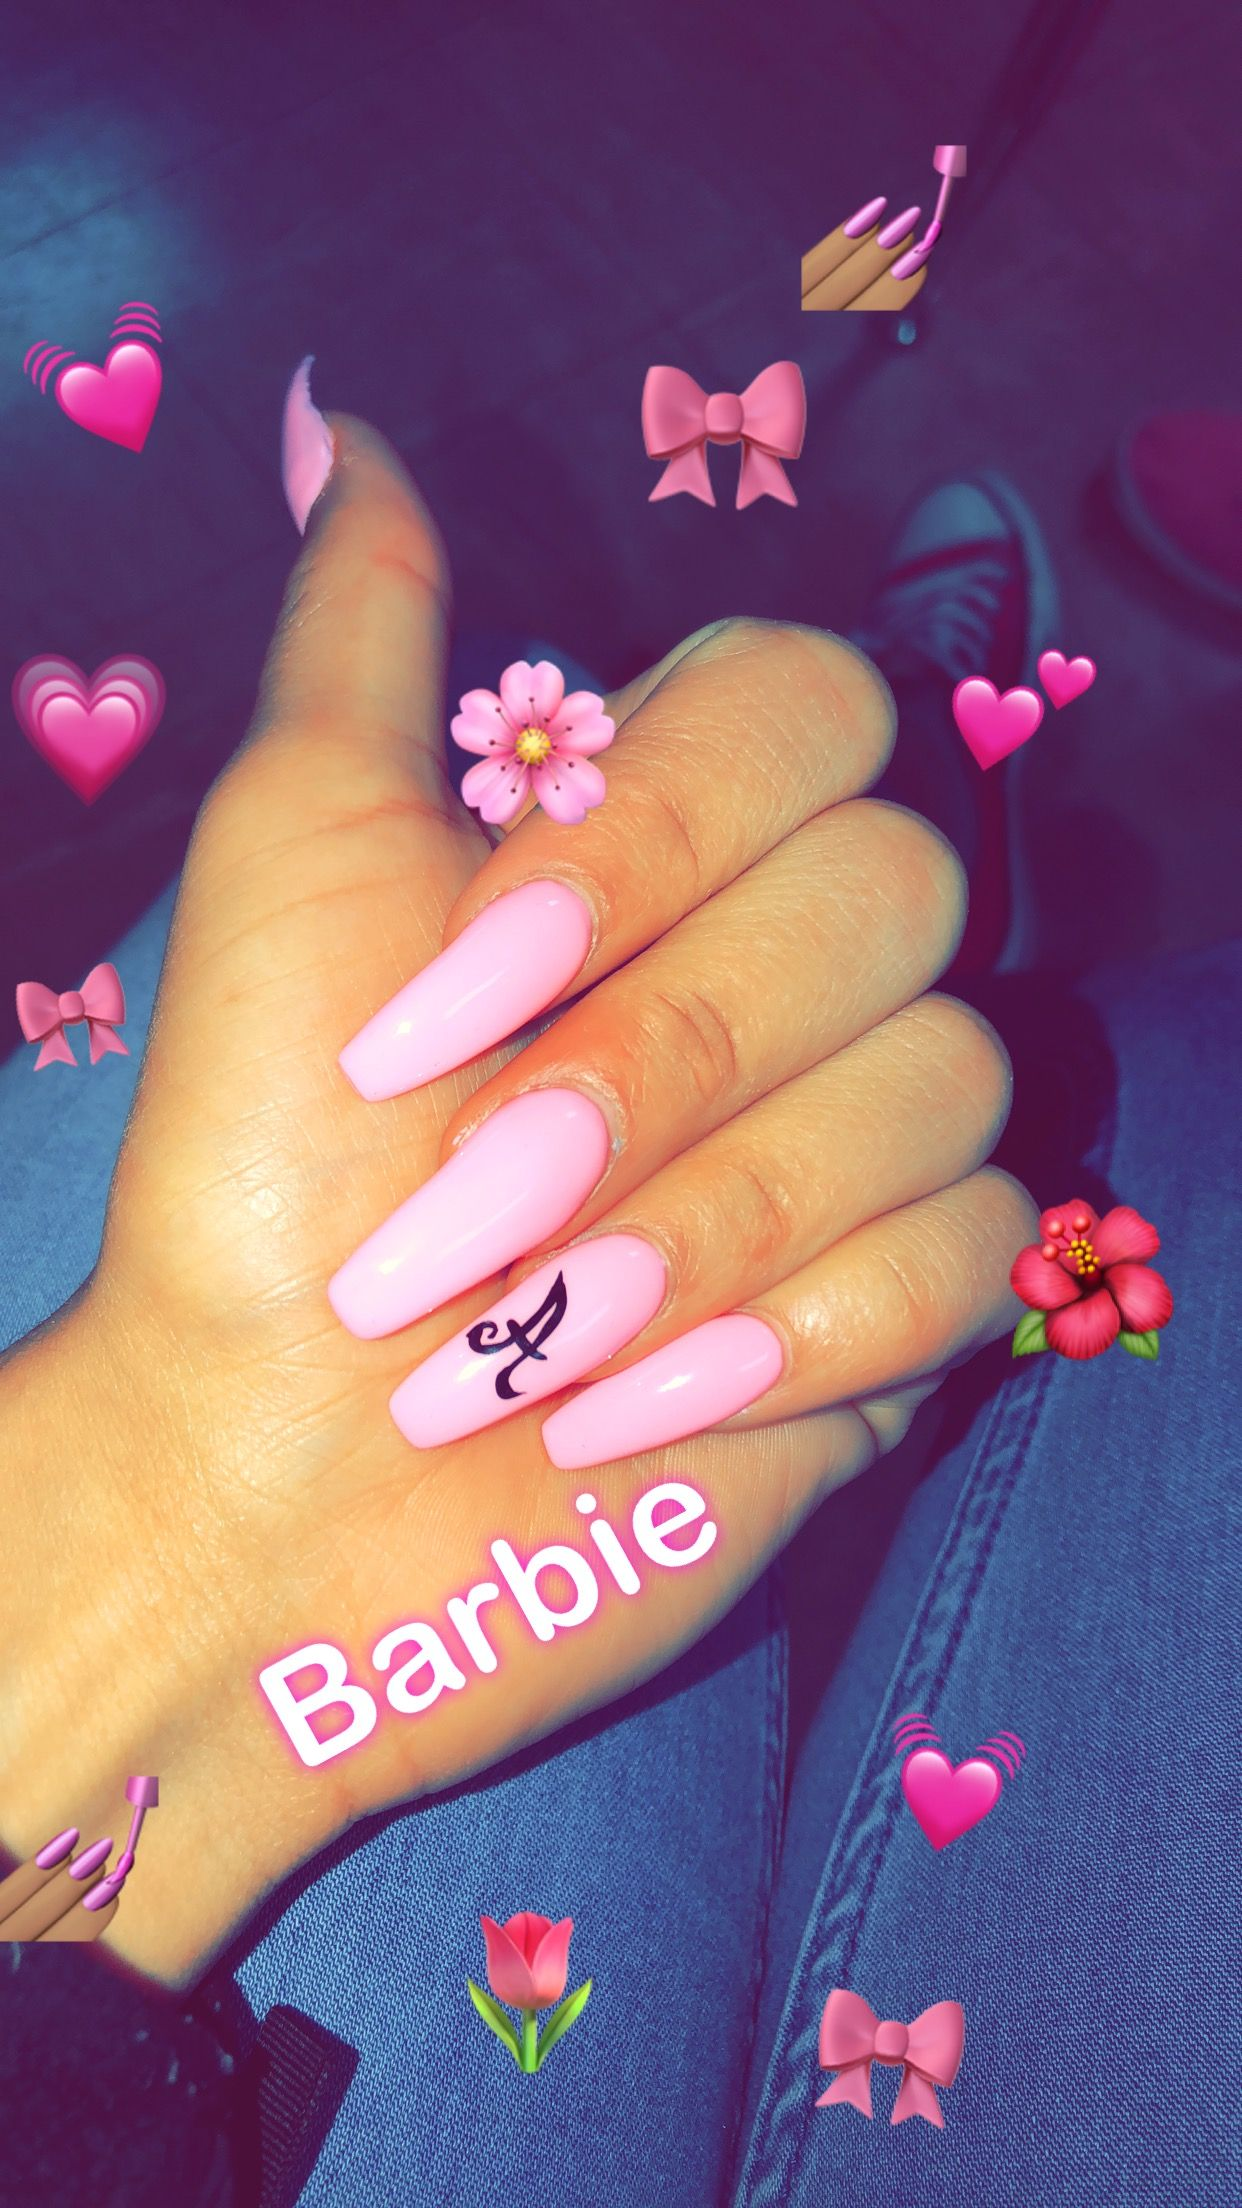 #nailinspo barbie pink initial